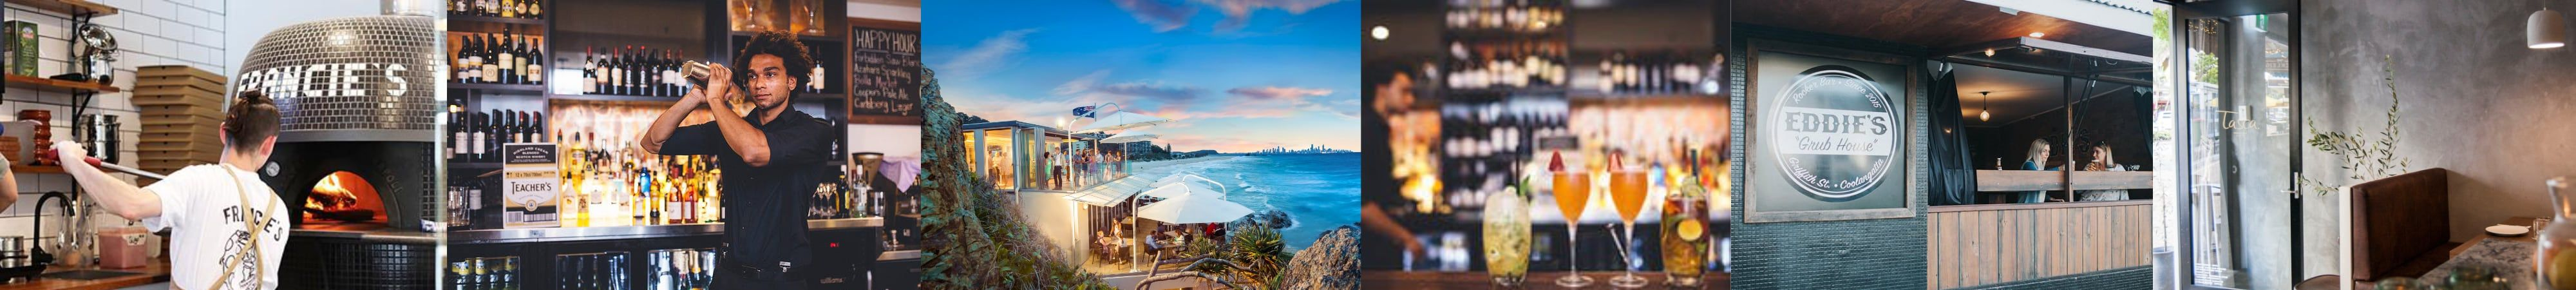 Gold Coast Restaurants